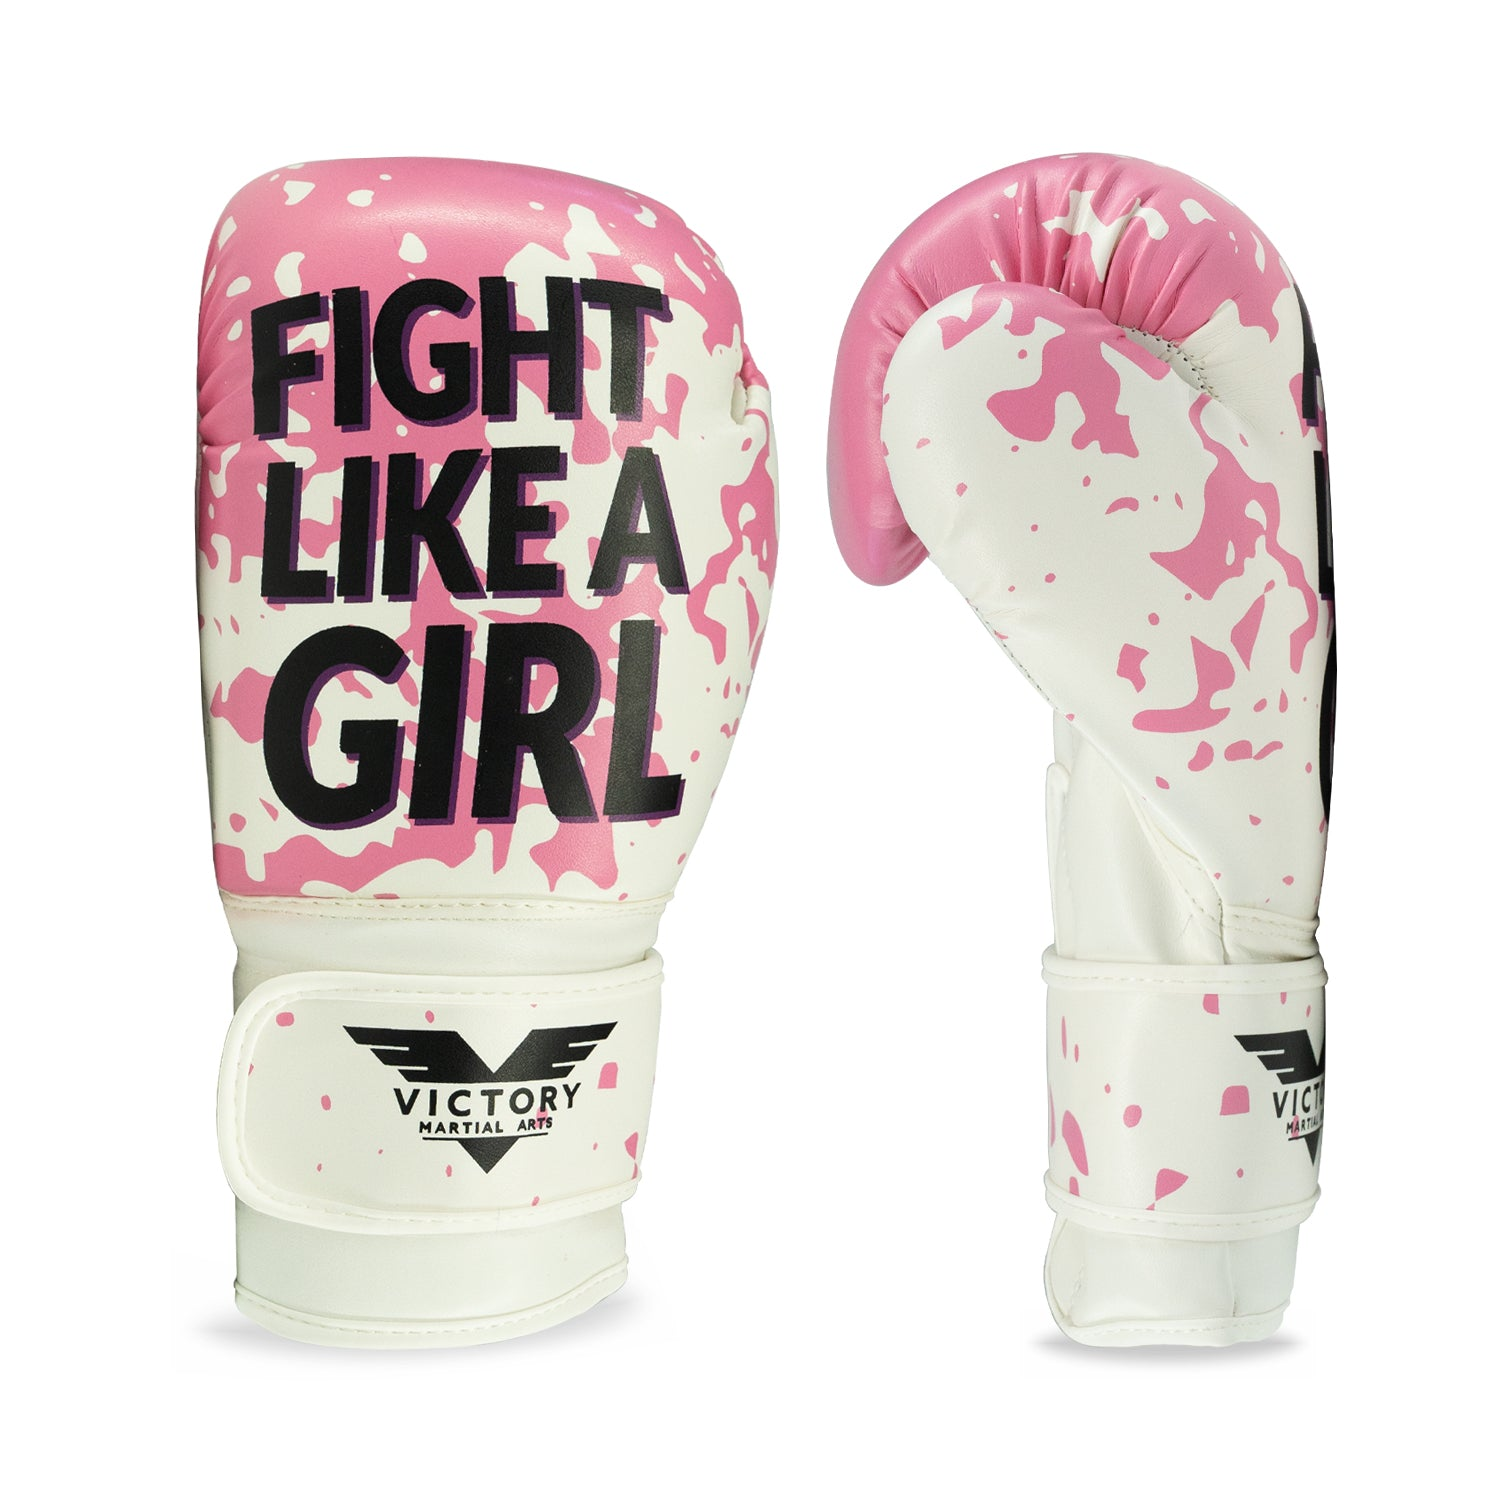 Victory Martial Arts Women/'s Cardio Kickboxing Boxing Gloves//Punching Bag Gloves